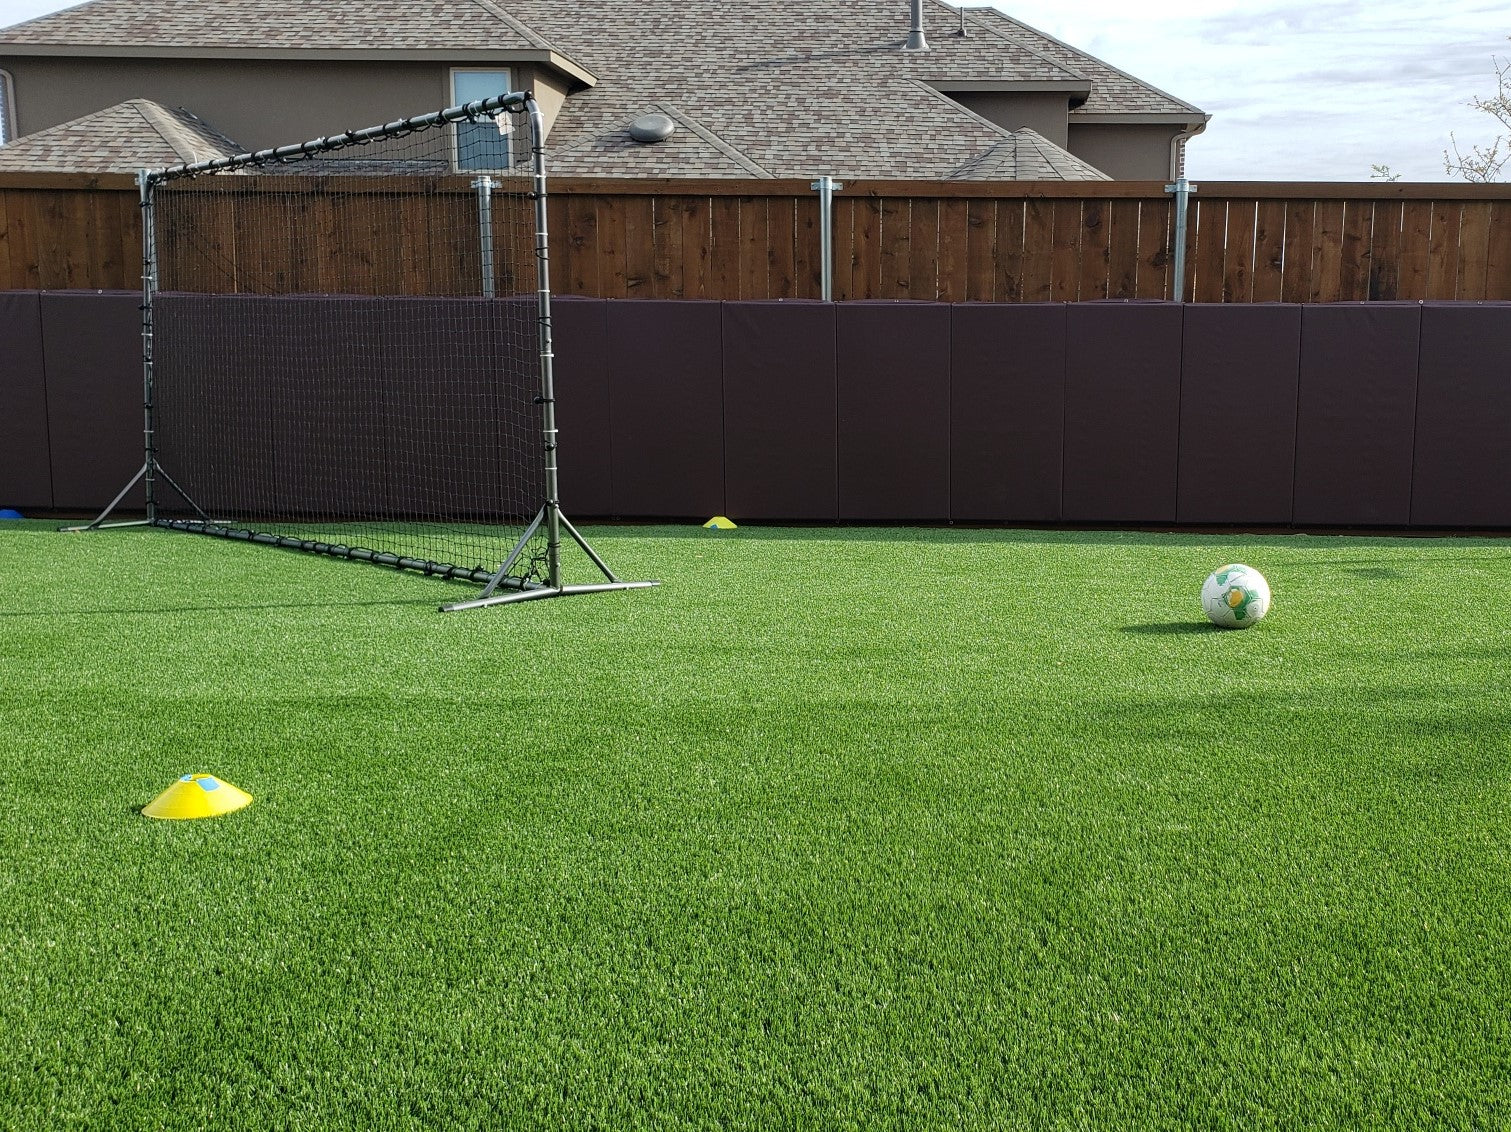 Home Outdoor Fence Mats for Soccer Practice